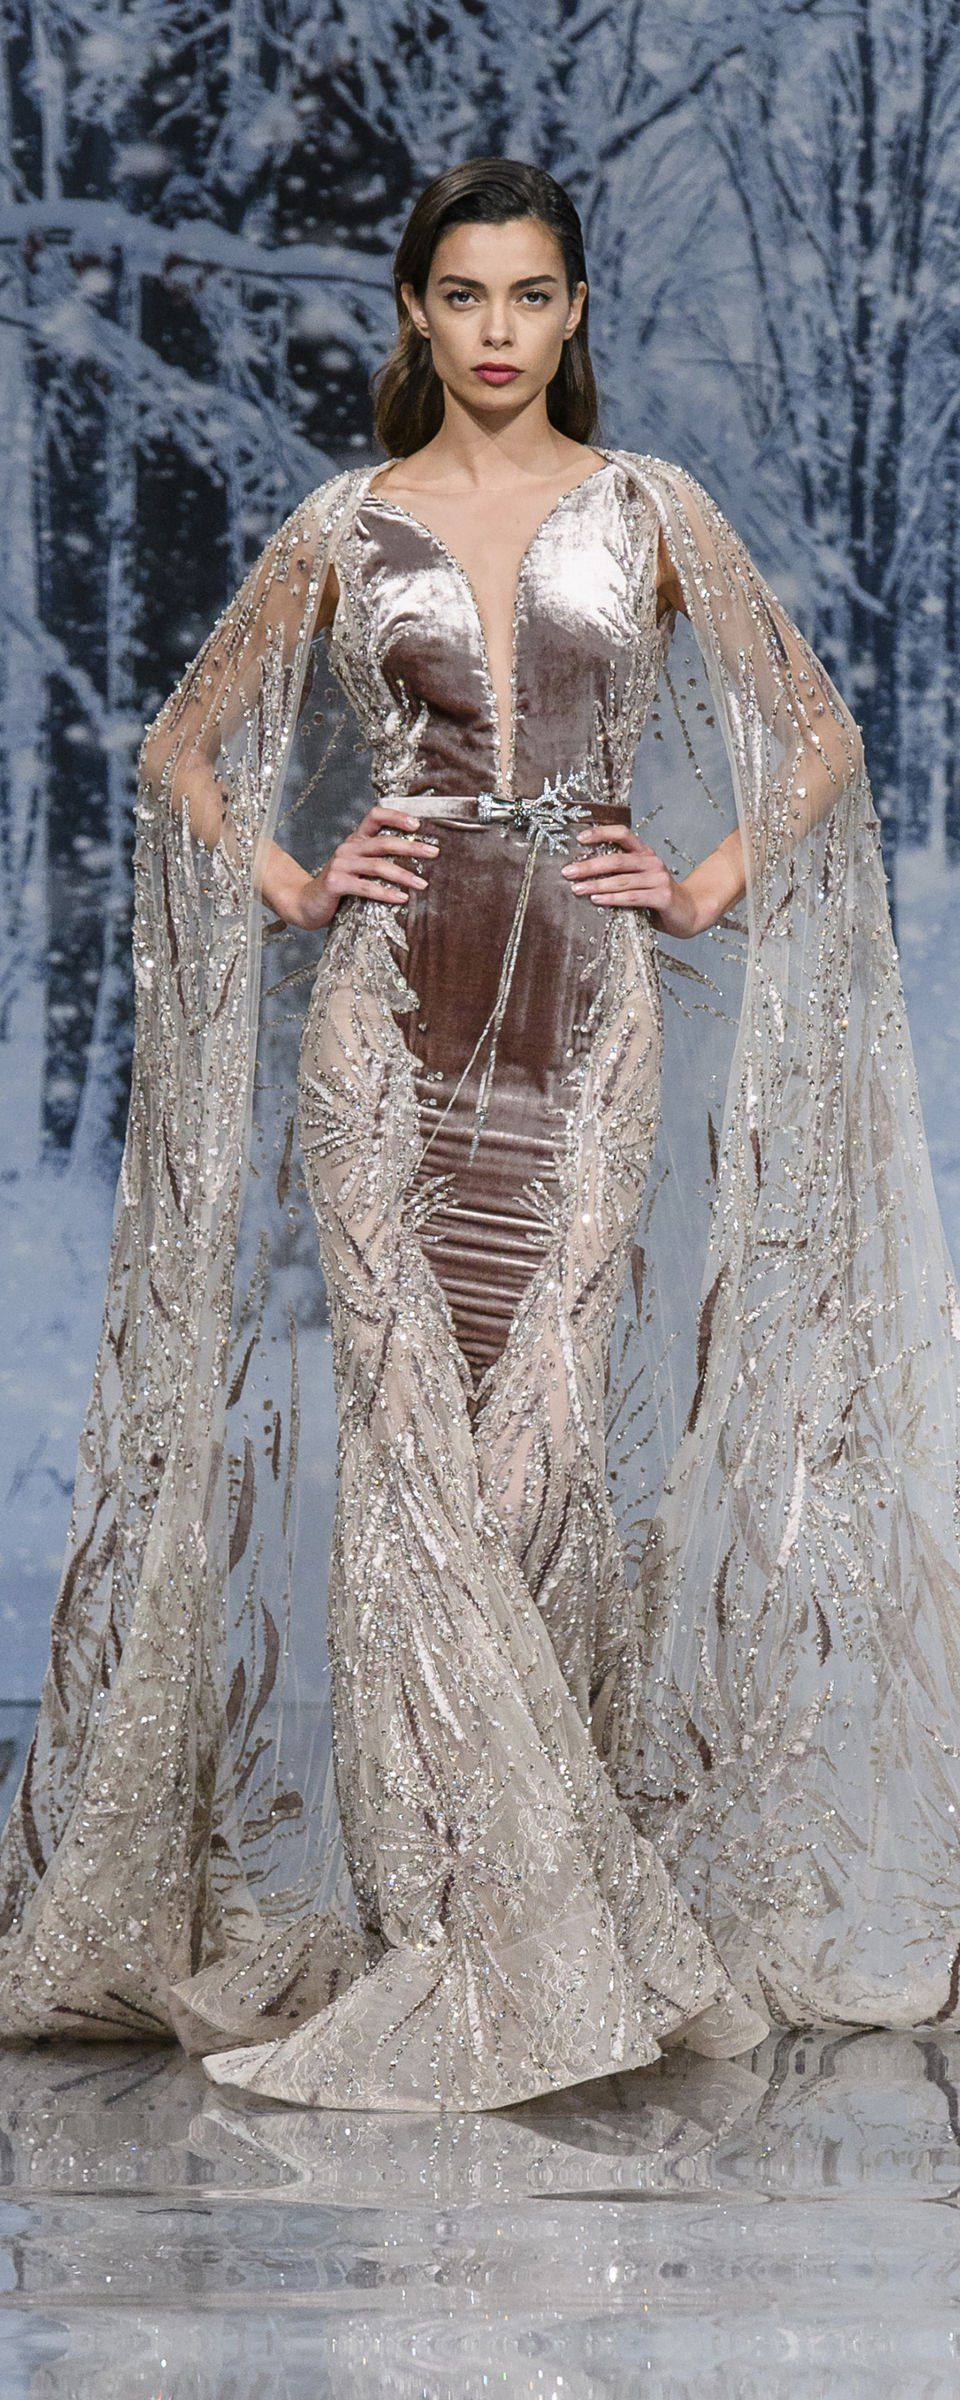 Ziad nakad automnehiver haute couture winter